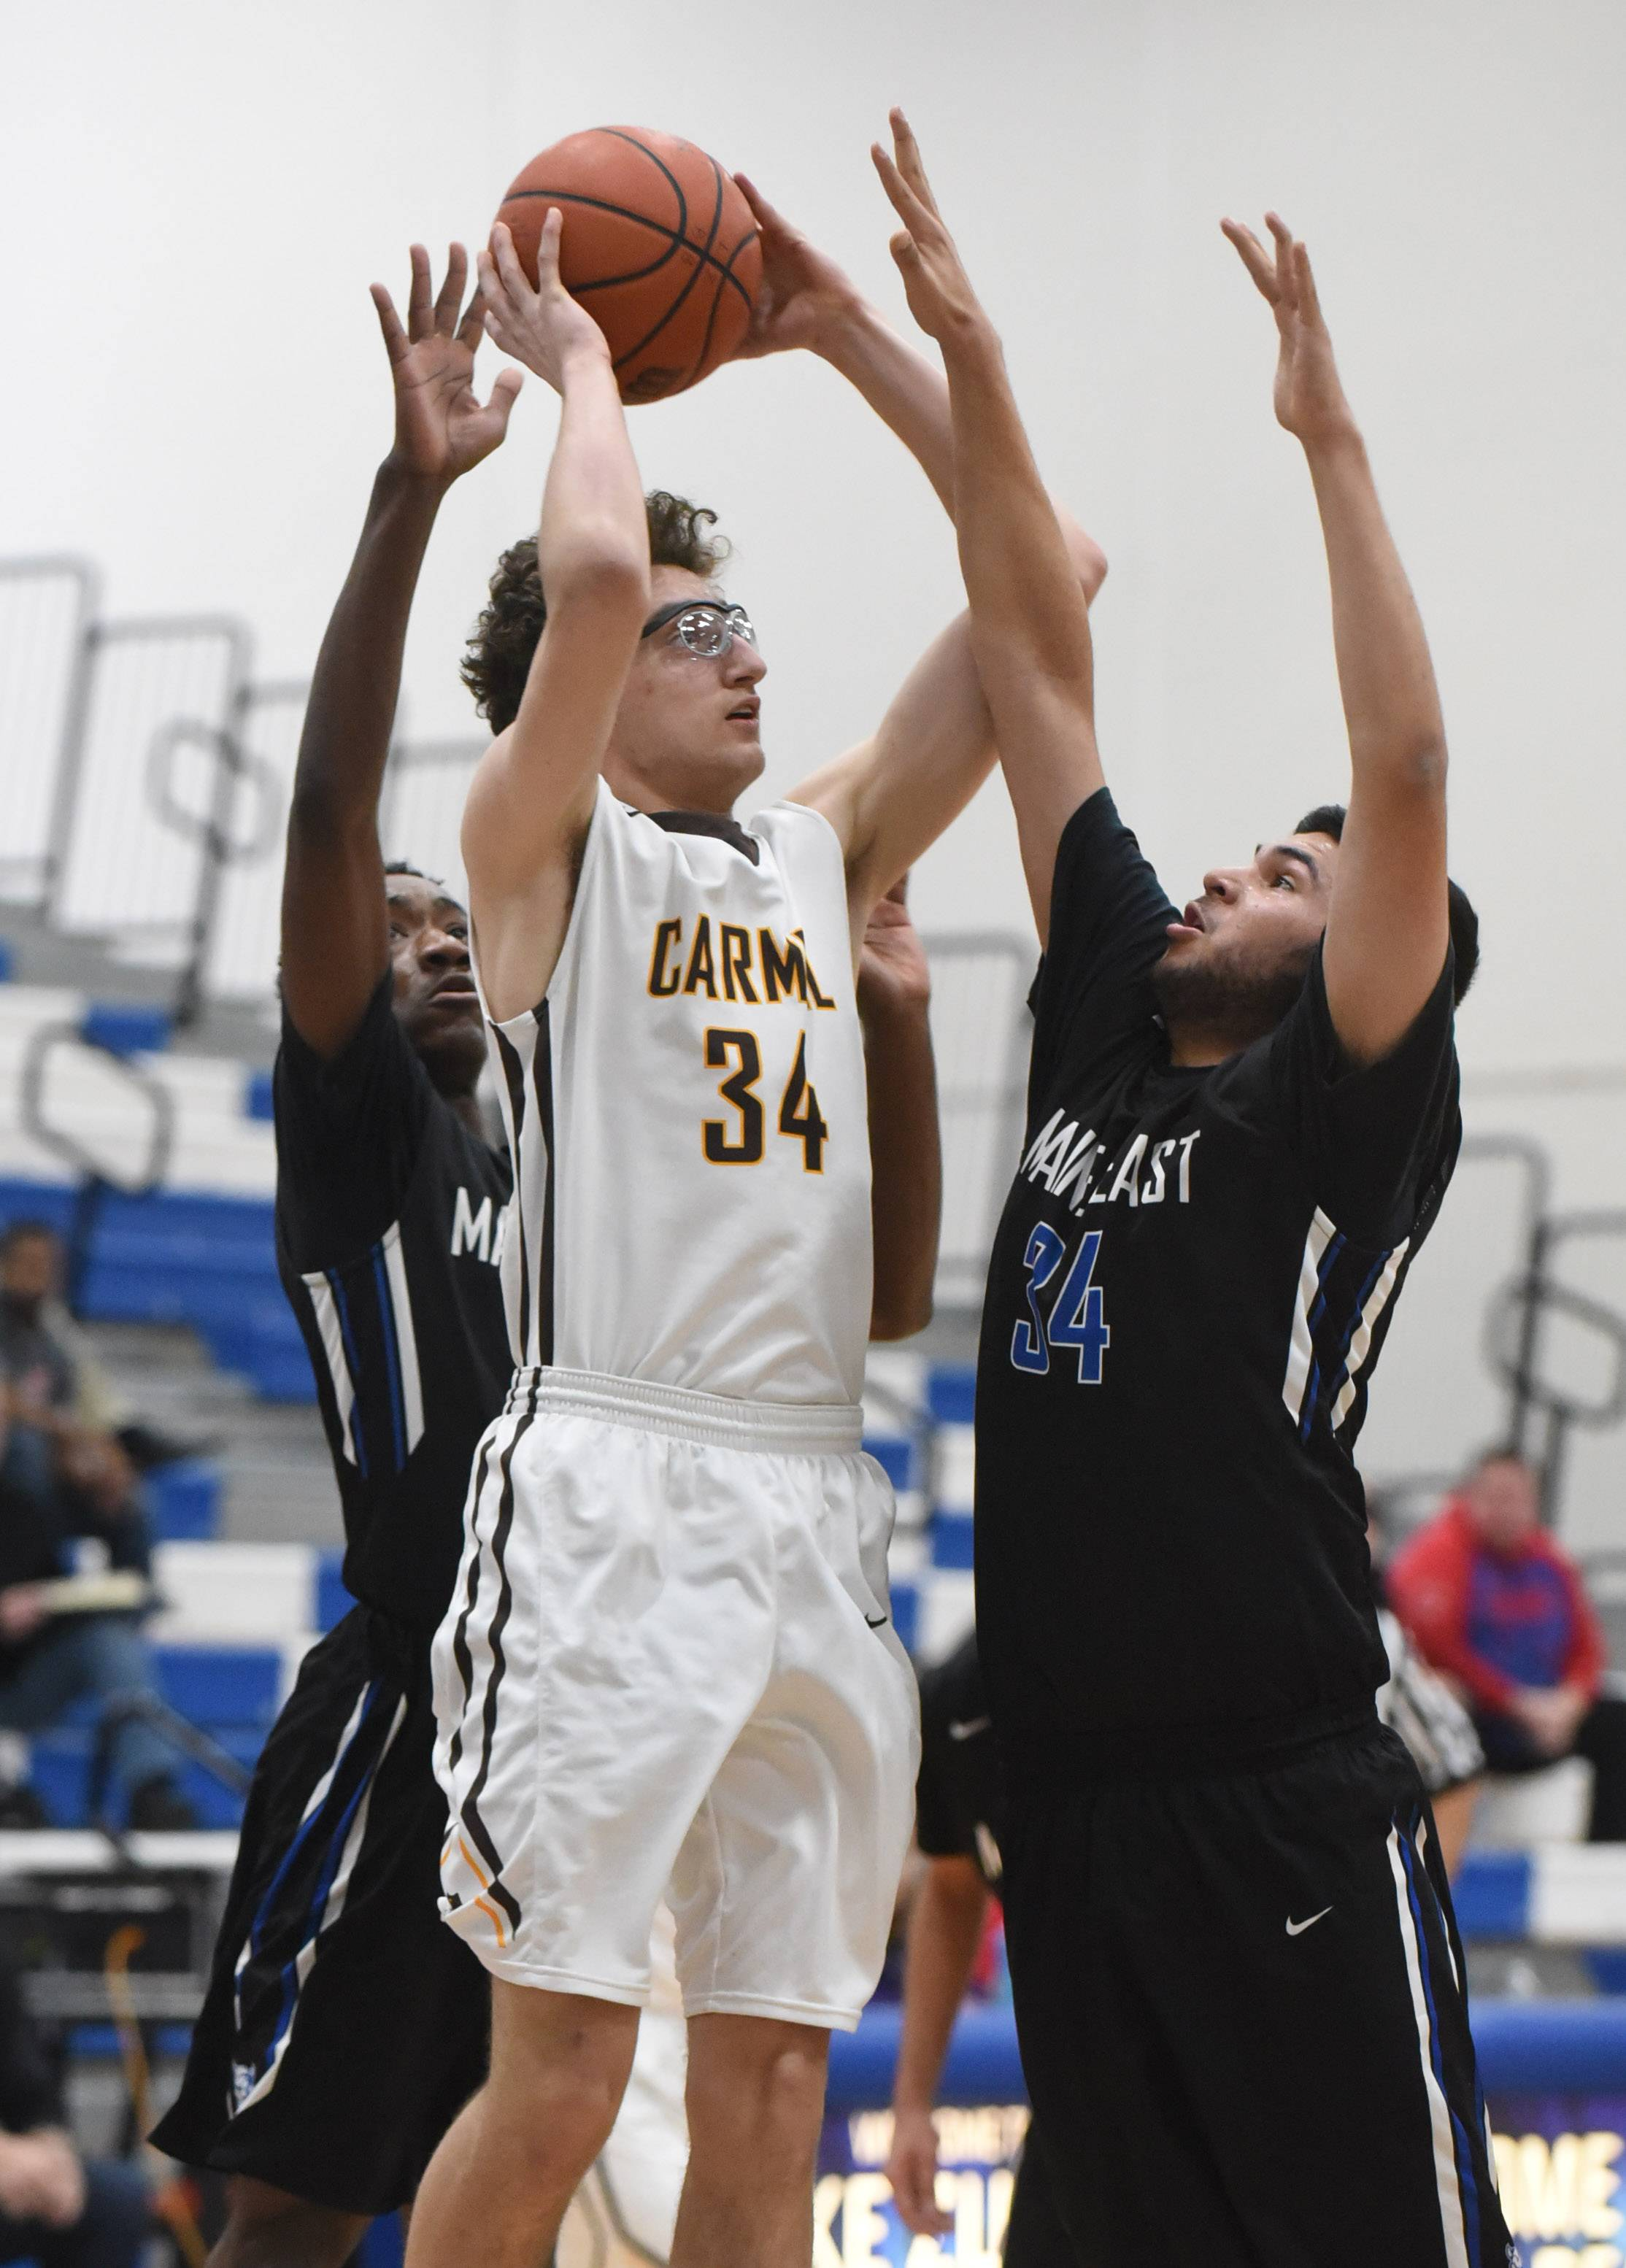 Carmel's Johnny Roeser (34) takes a shot over Maine East's Kyle Gilani during Monday's MLK tournament at Lake Zurich.